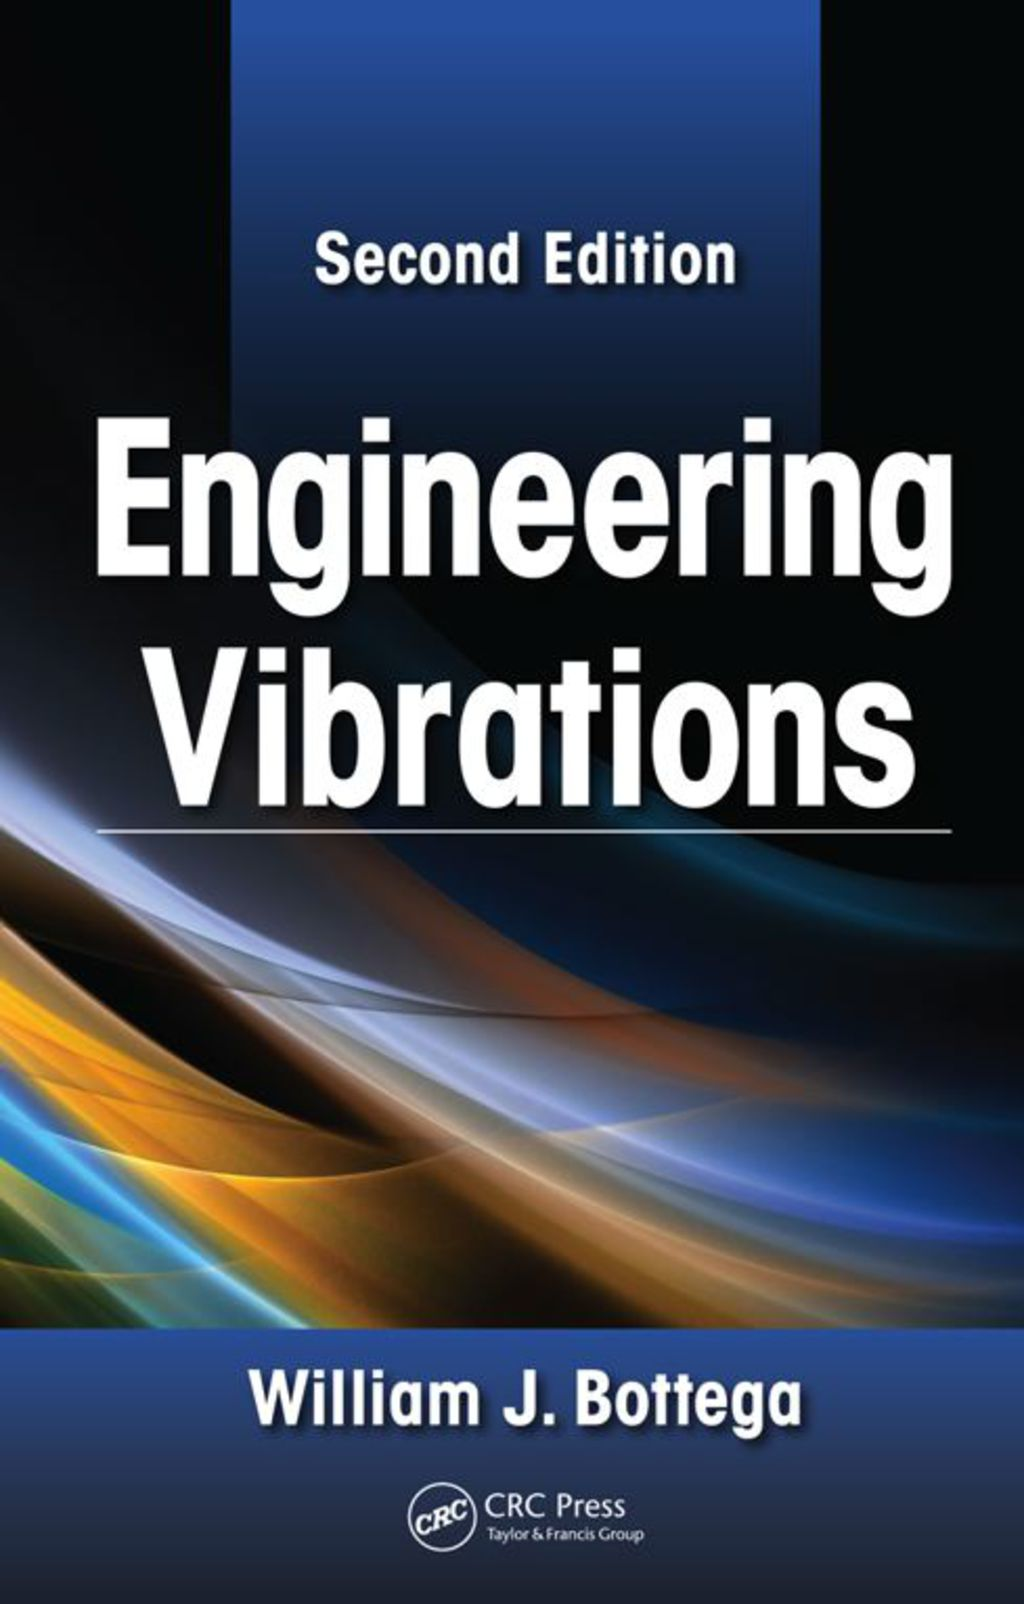 Engineering Vibrations, Second Edition (ebook) eBooks